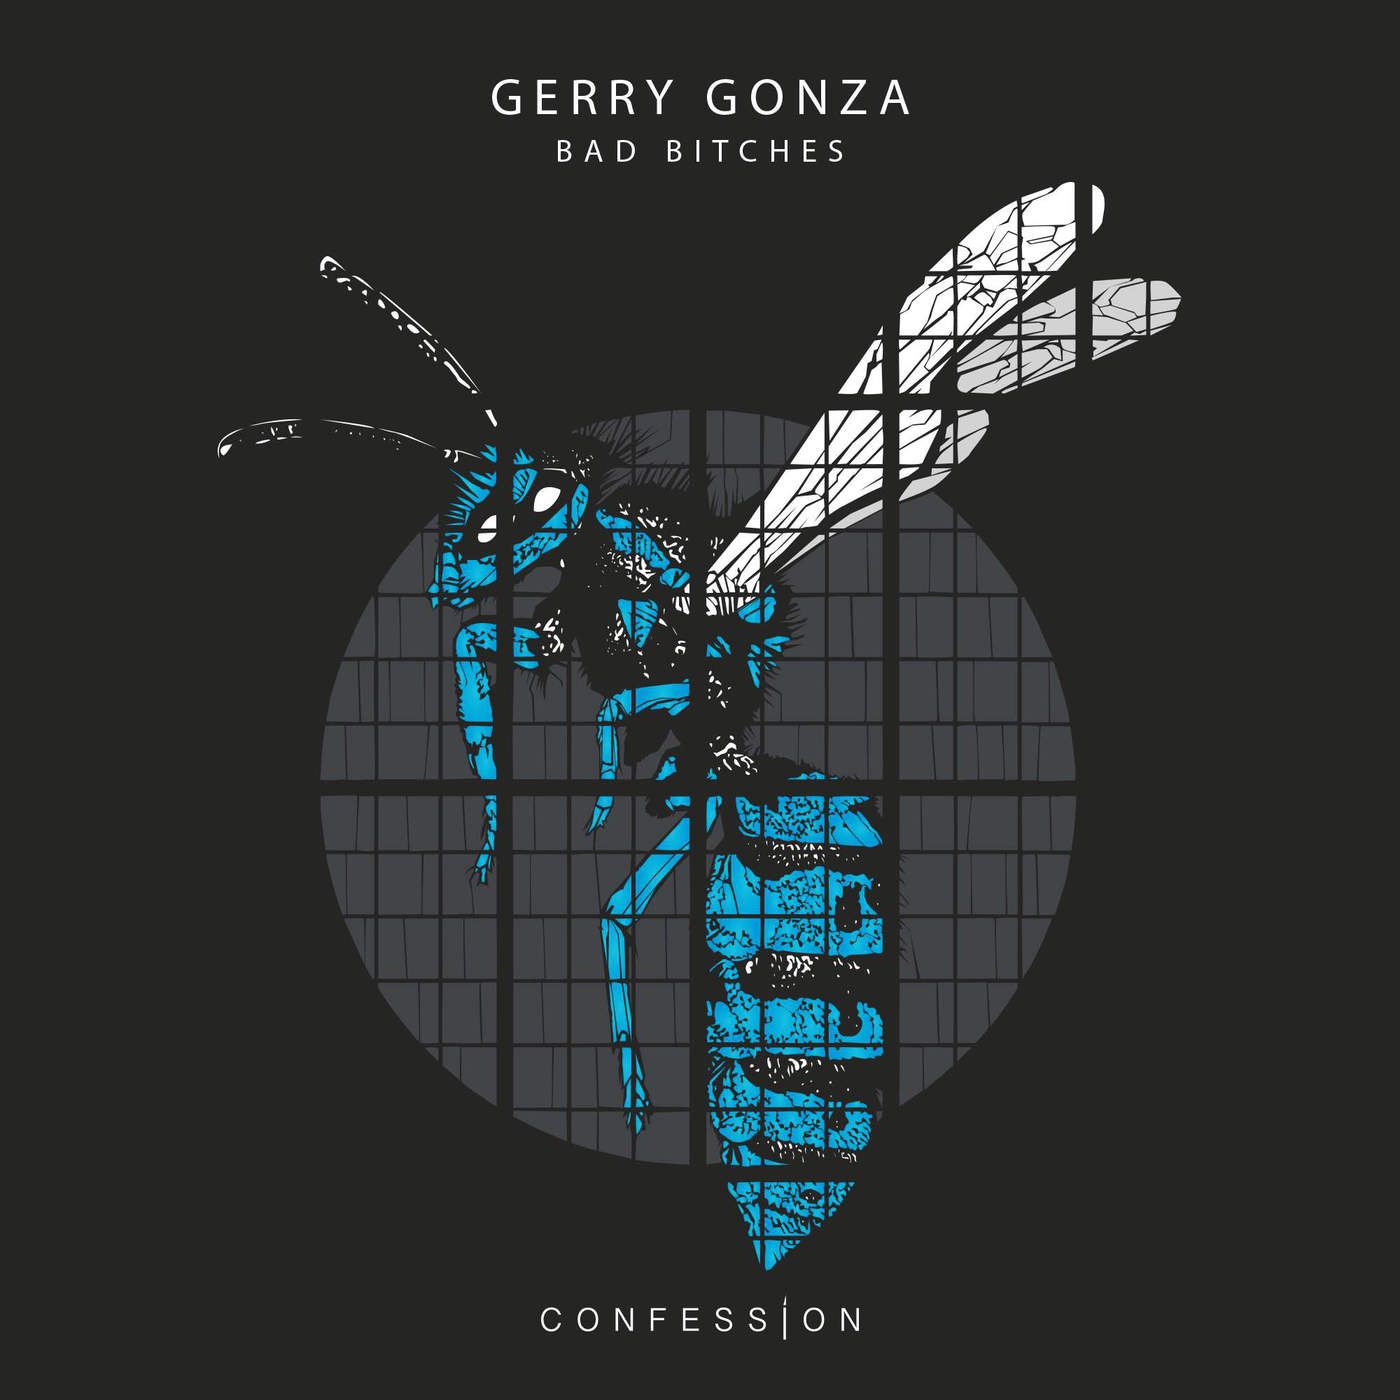 Gerry Gonza - Bad Bitches - Single Cover